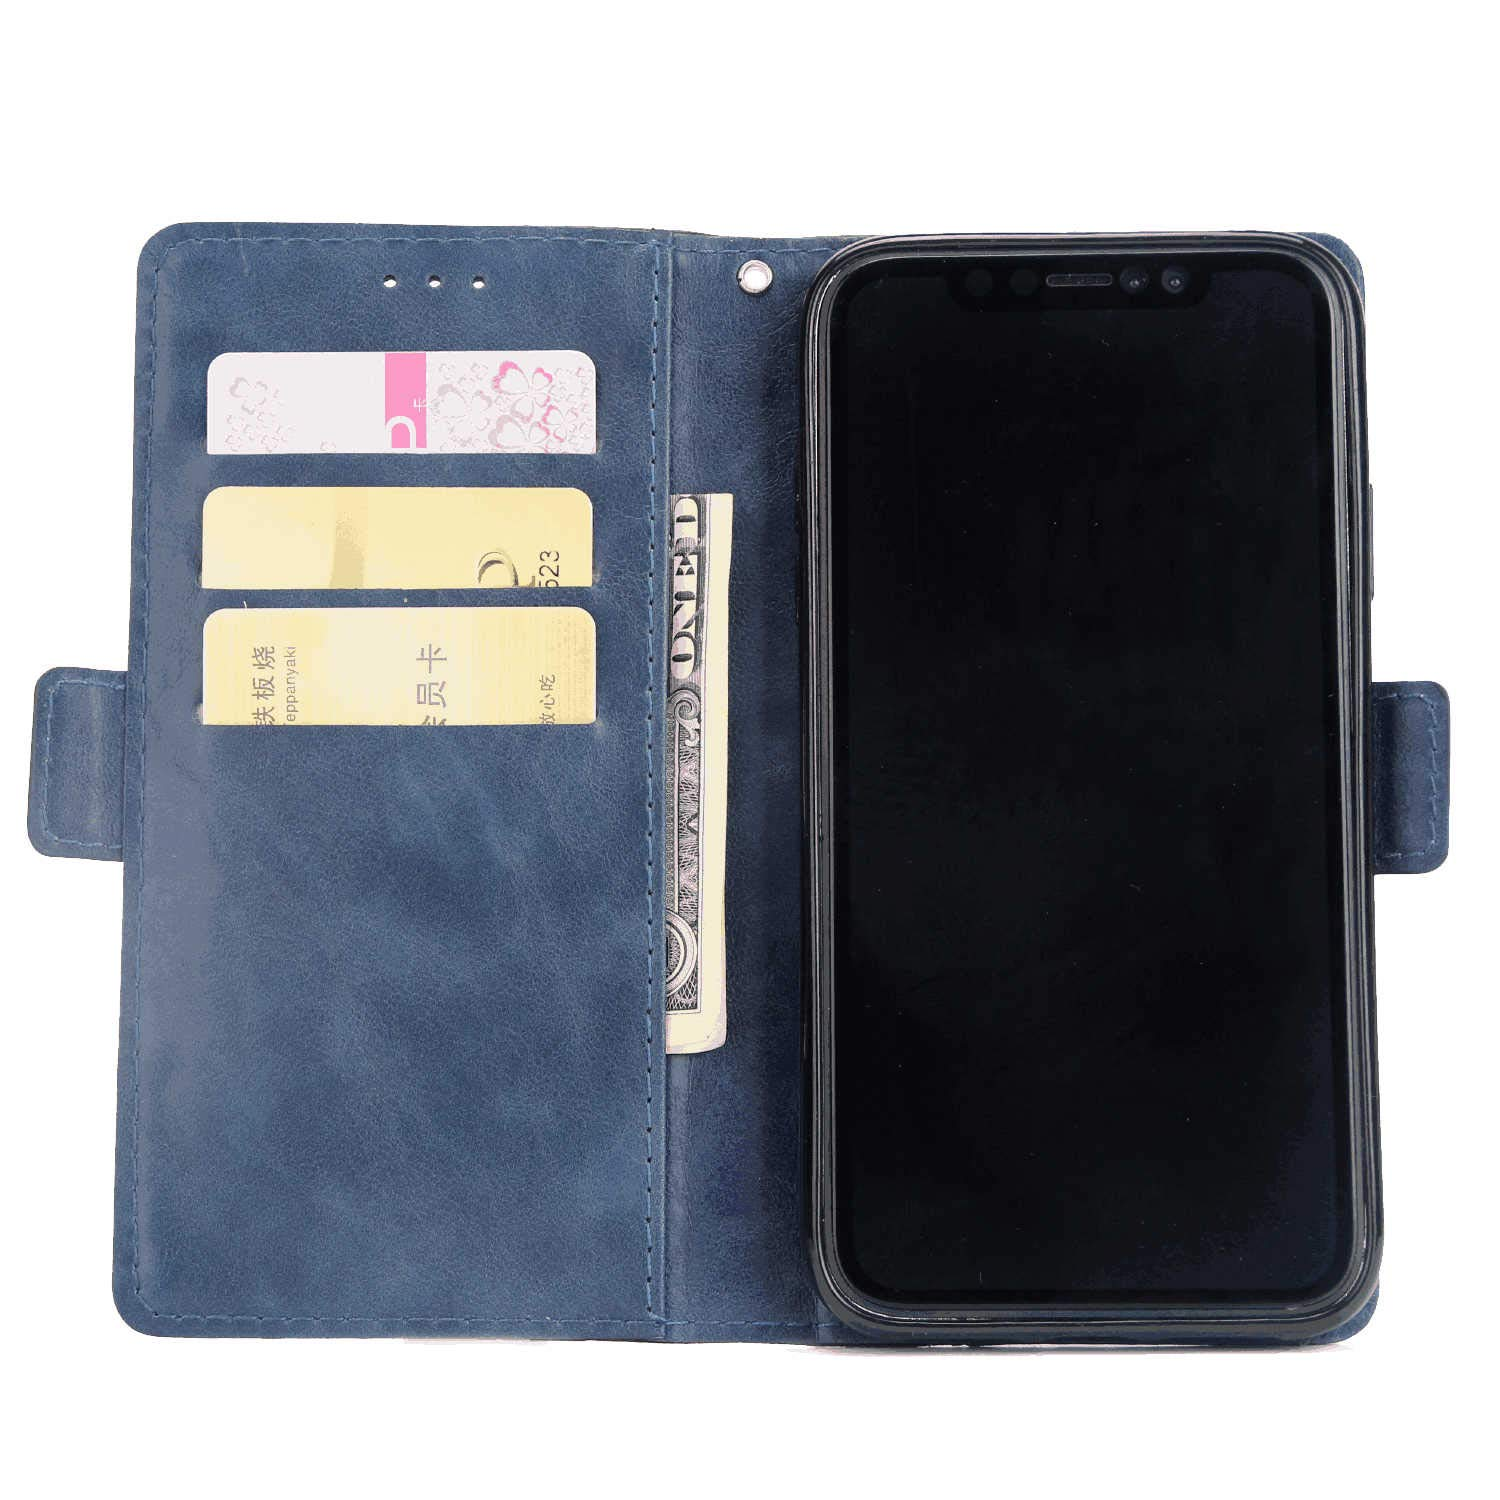 Cover for Samsung Galaxy Note8 Leather Mobile Phone case Kickstand Card Holders Luxury Business with Free Waterproof-Bag Business Samsung Galaxy Note8 Flip Case